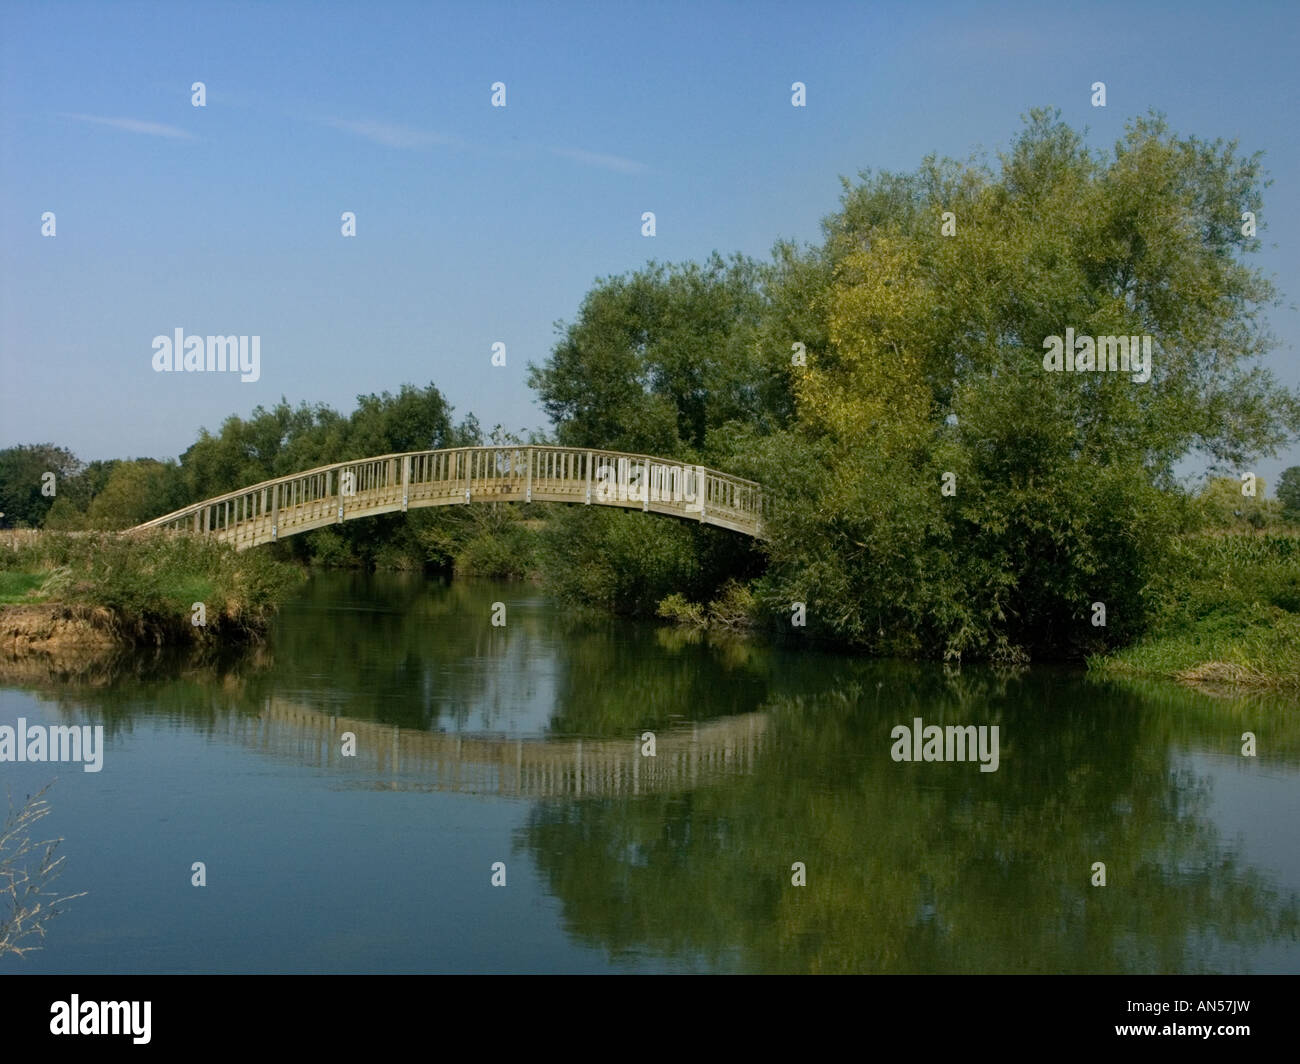 Bloomer's Hole footbridge over the Thames at Lechlade-on-Thames built in 2000 of steel with wooden cladding Stock Photo